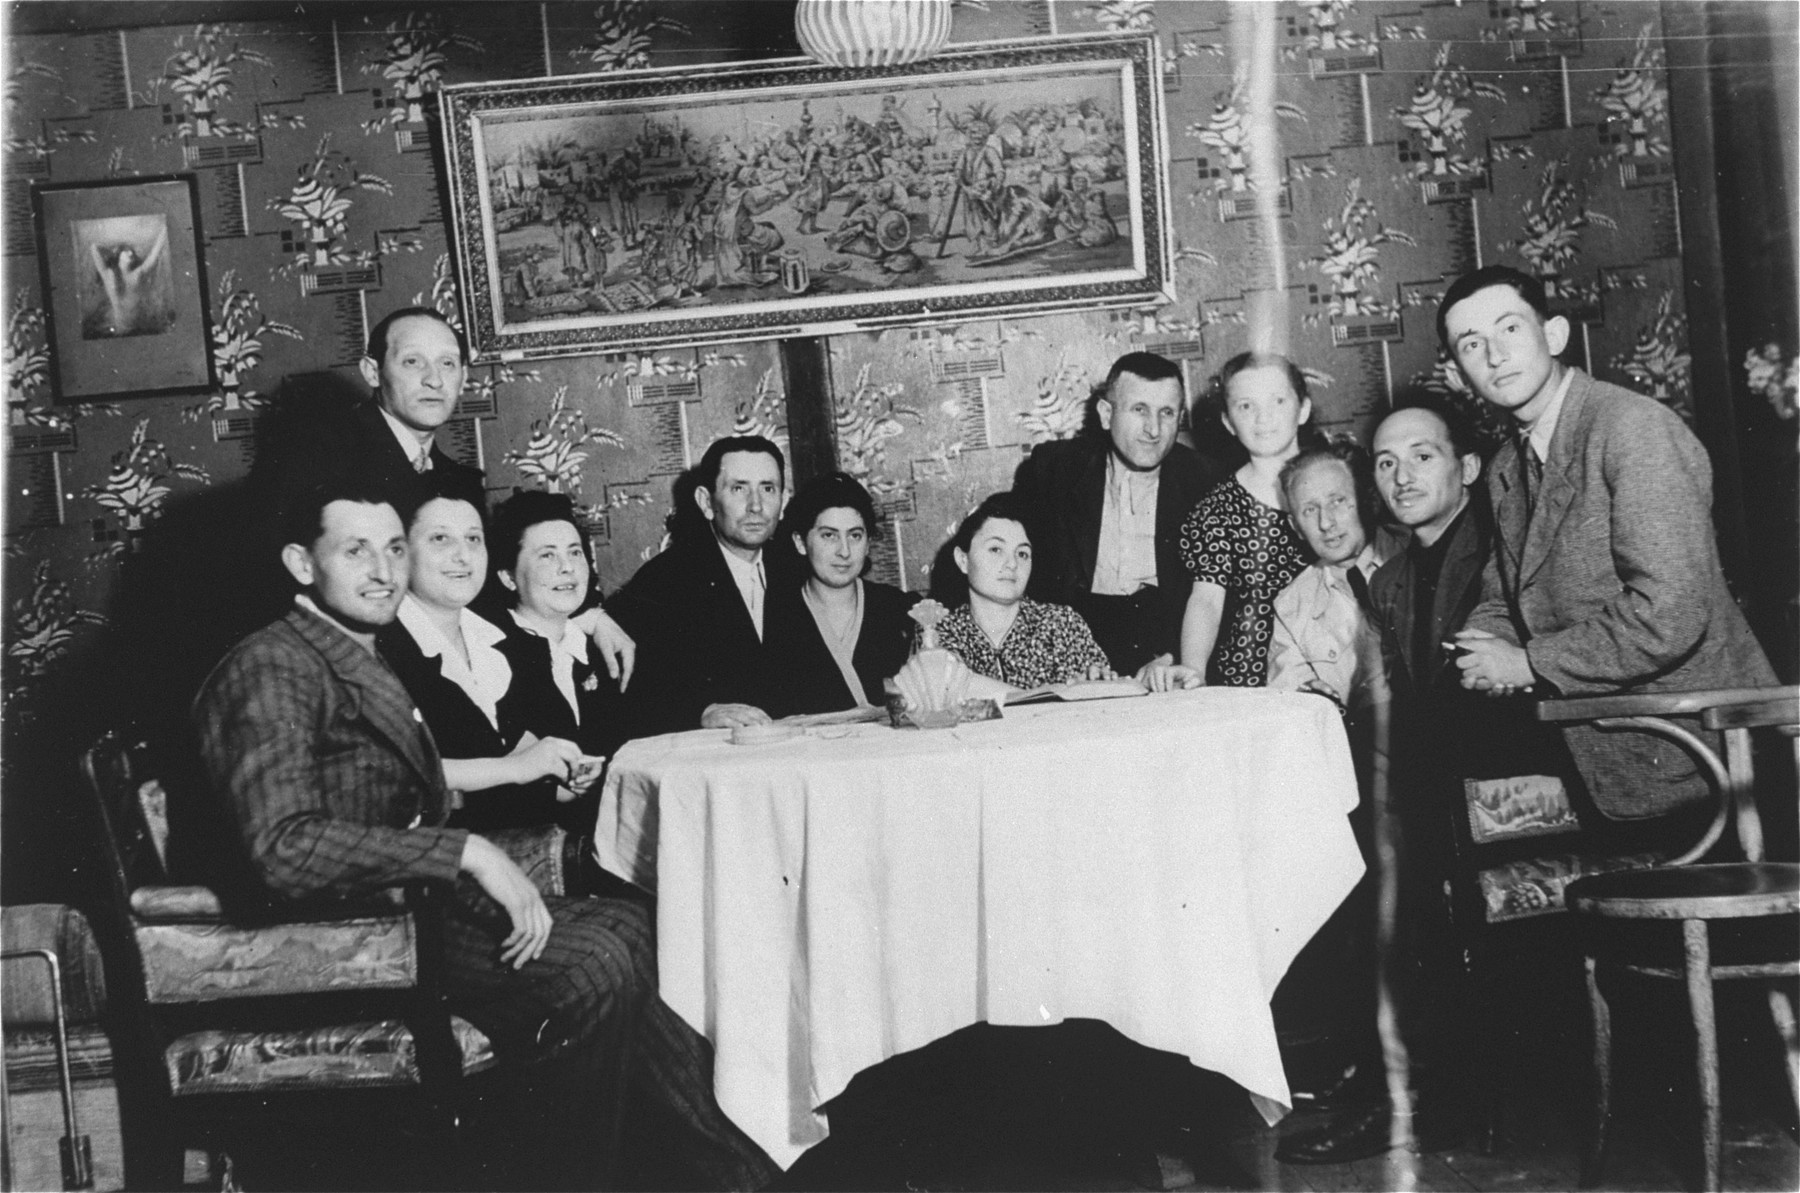 The family of Sylvia Kramarski gathers in their former home in Tarczyn, Poland.     Sylvia Kramarski is pictured second from the left.  She notes that their house was largely undisturbed during their absence and that surviving family members lived there for a month in the winter of 1945.  A few months later it was stoned by local residents.